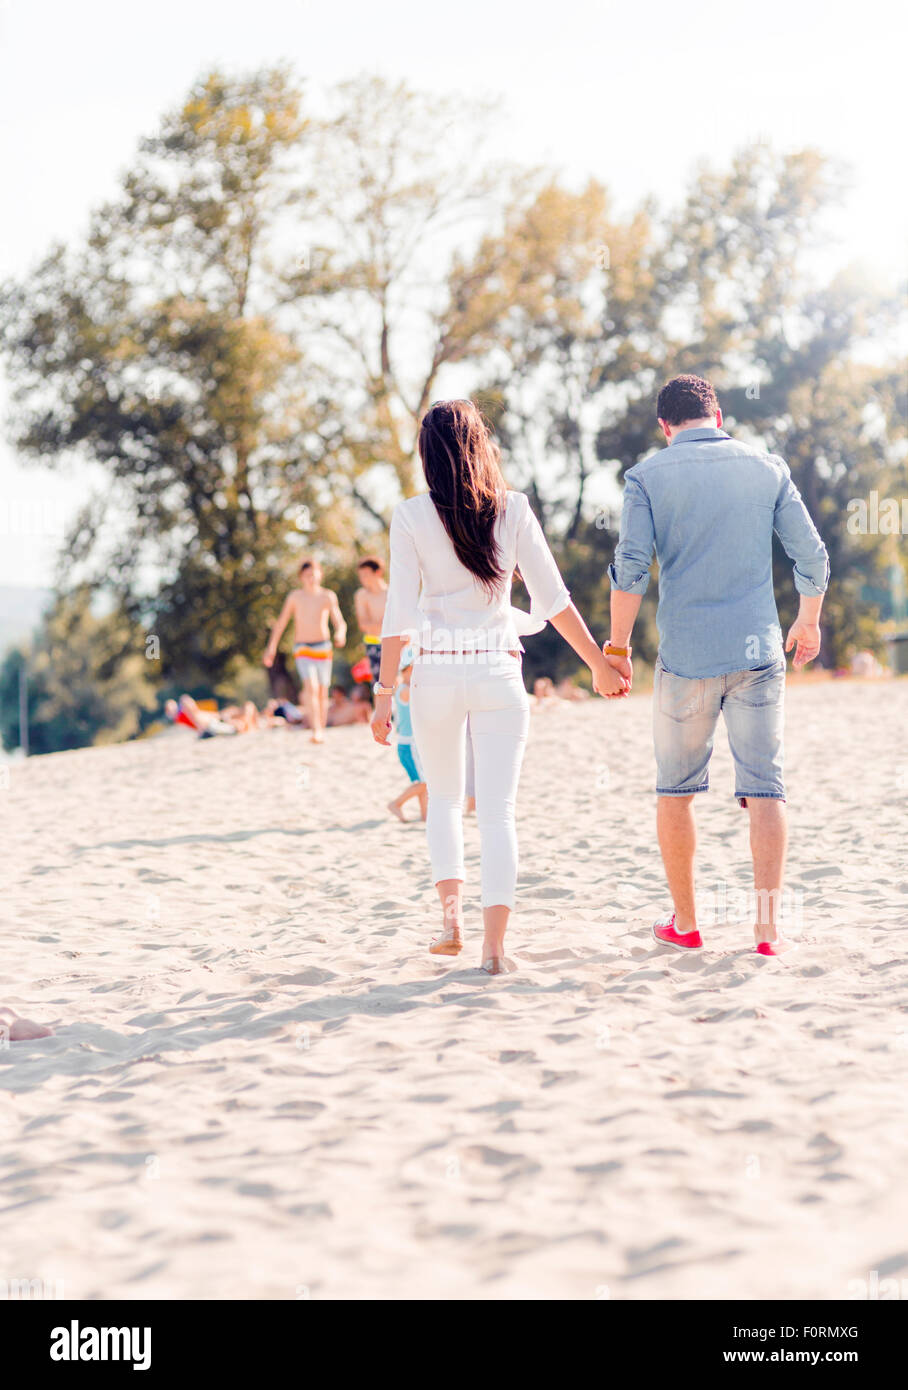 Couple holding hands and walking on a sandy beach - Stock Image